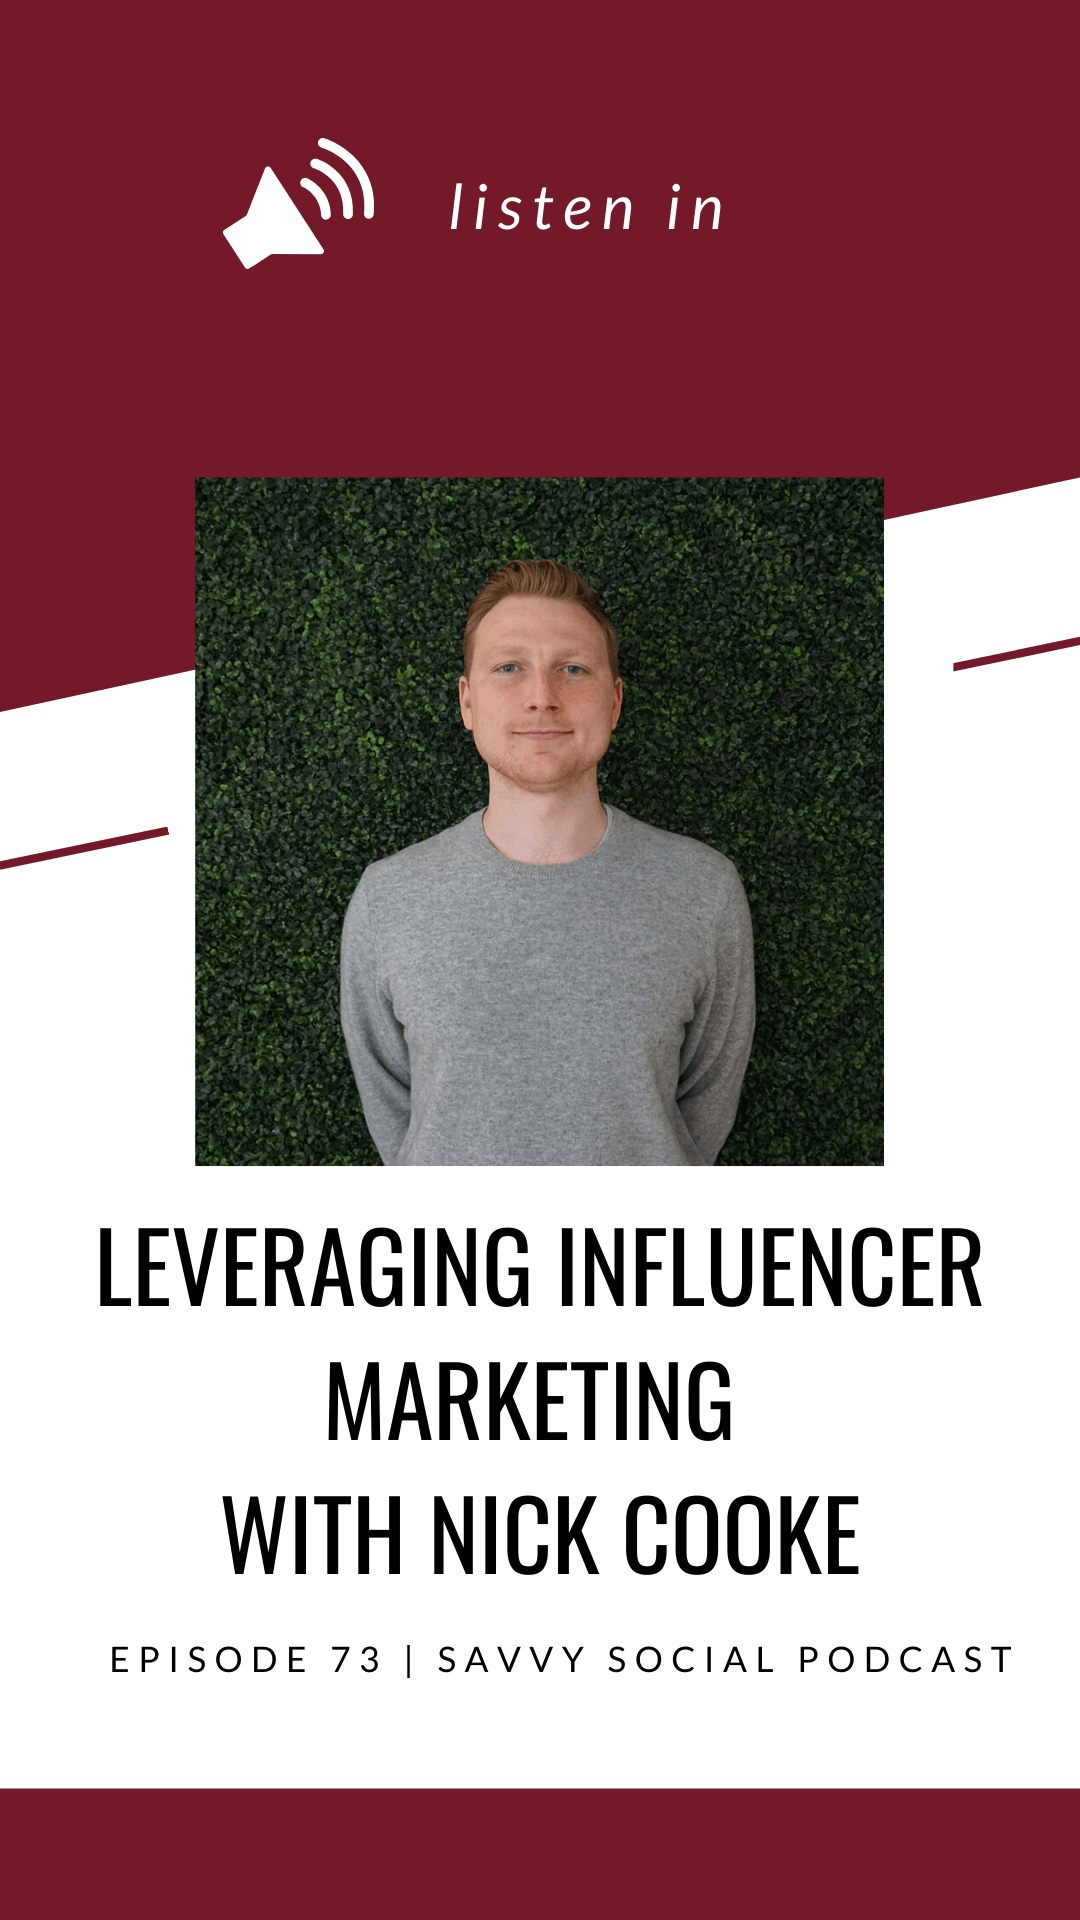 Leveraging Influencer Marketing with Nick Cooke